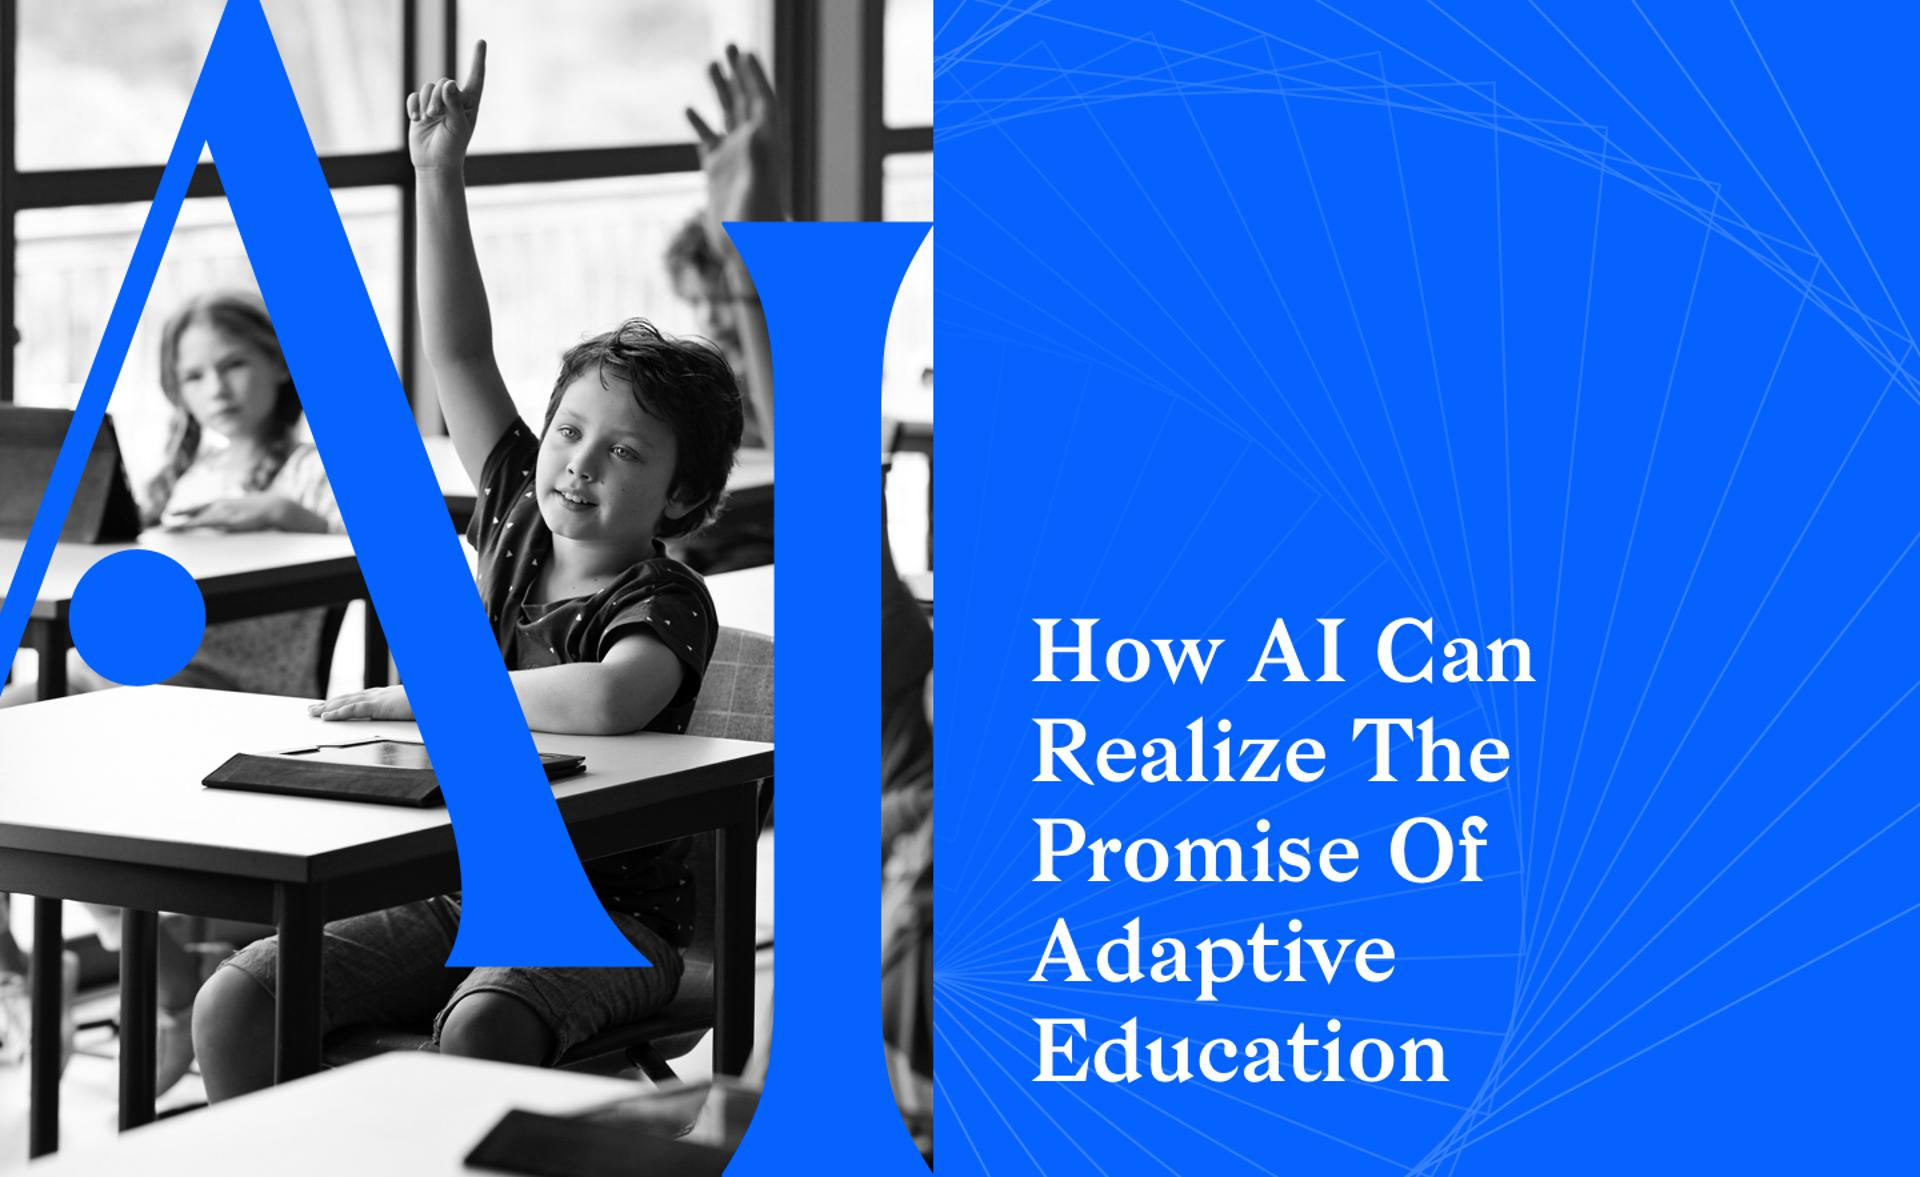 How AI Can Realize The Promise Of Adaptive Education